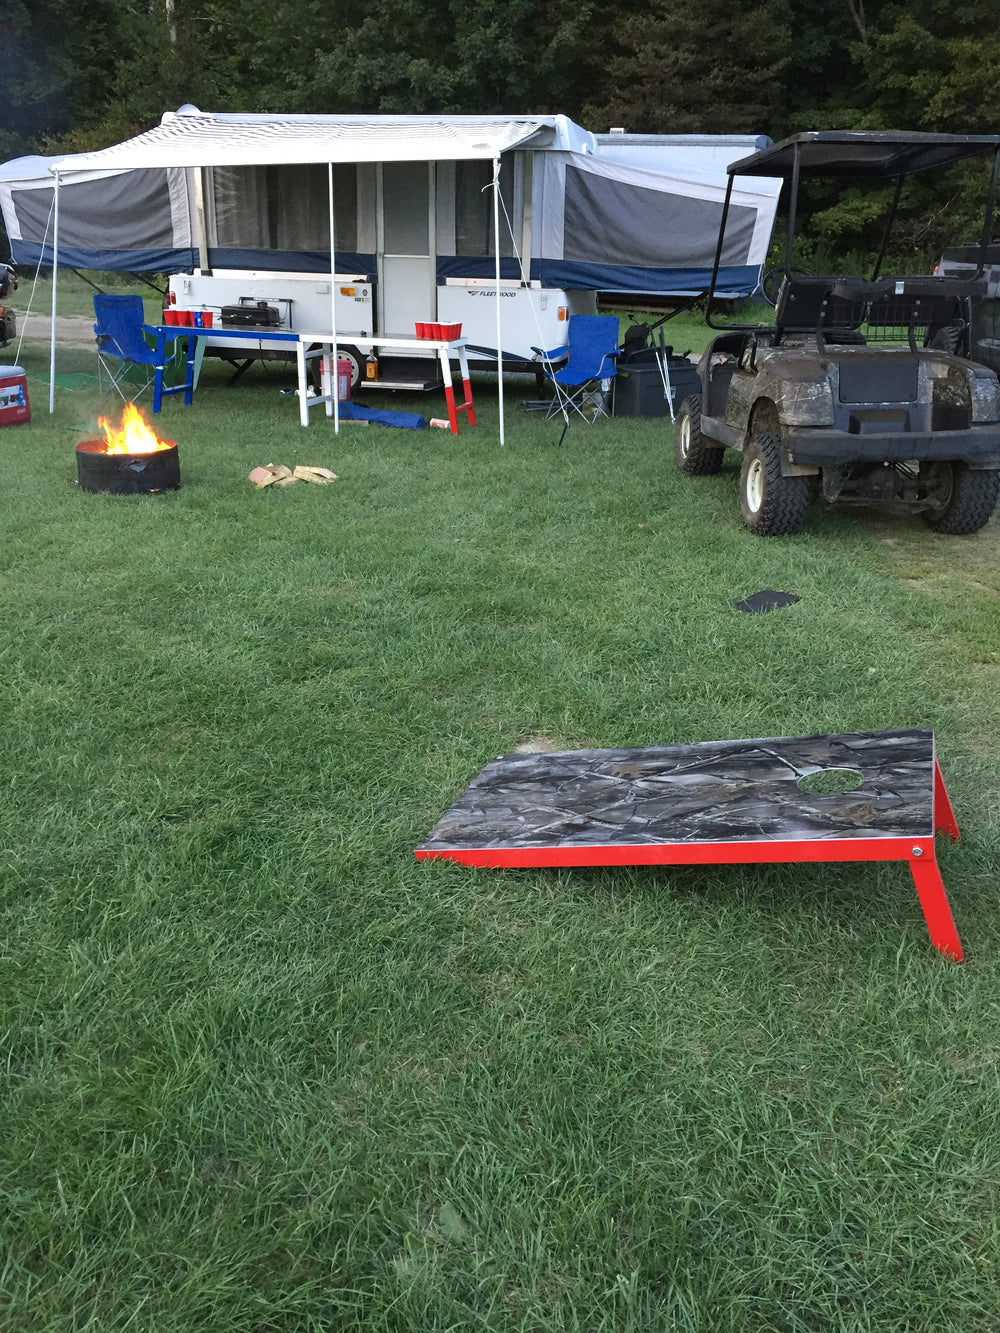 Awesome We Hope You Enjoy Your New Set Of Backyard Games. New Stuff Will Be Added  As They Are Developed To Compliment Your New Way Of Picnicking, Partying,  Camping, ...